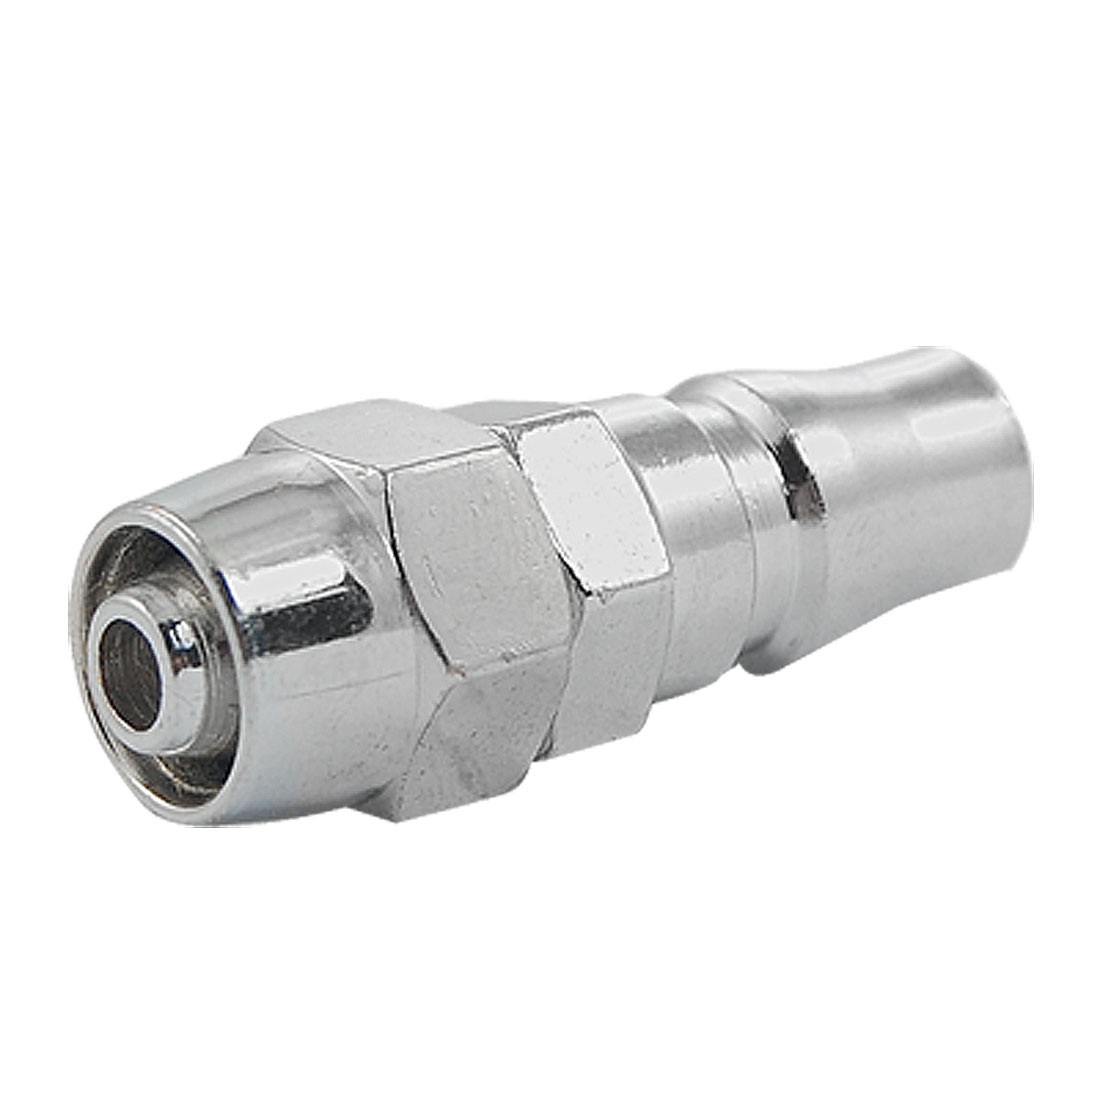 "PP30 1/4"" x 7/16"" Pneumatic Fittings Quick Coupler Silver Tone"